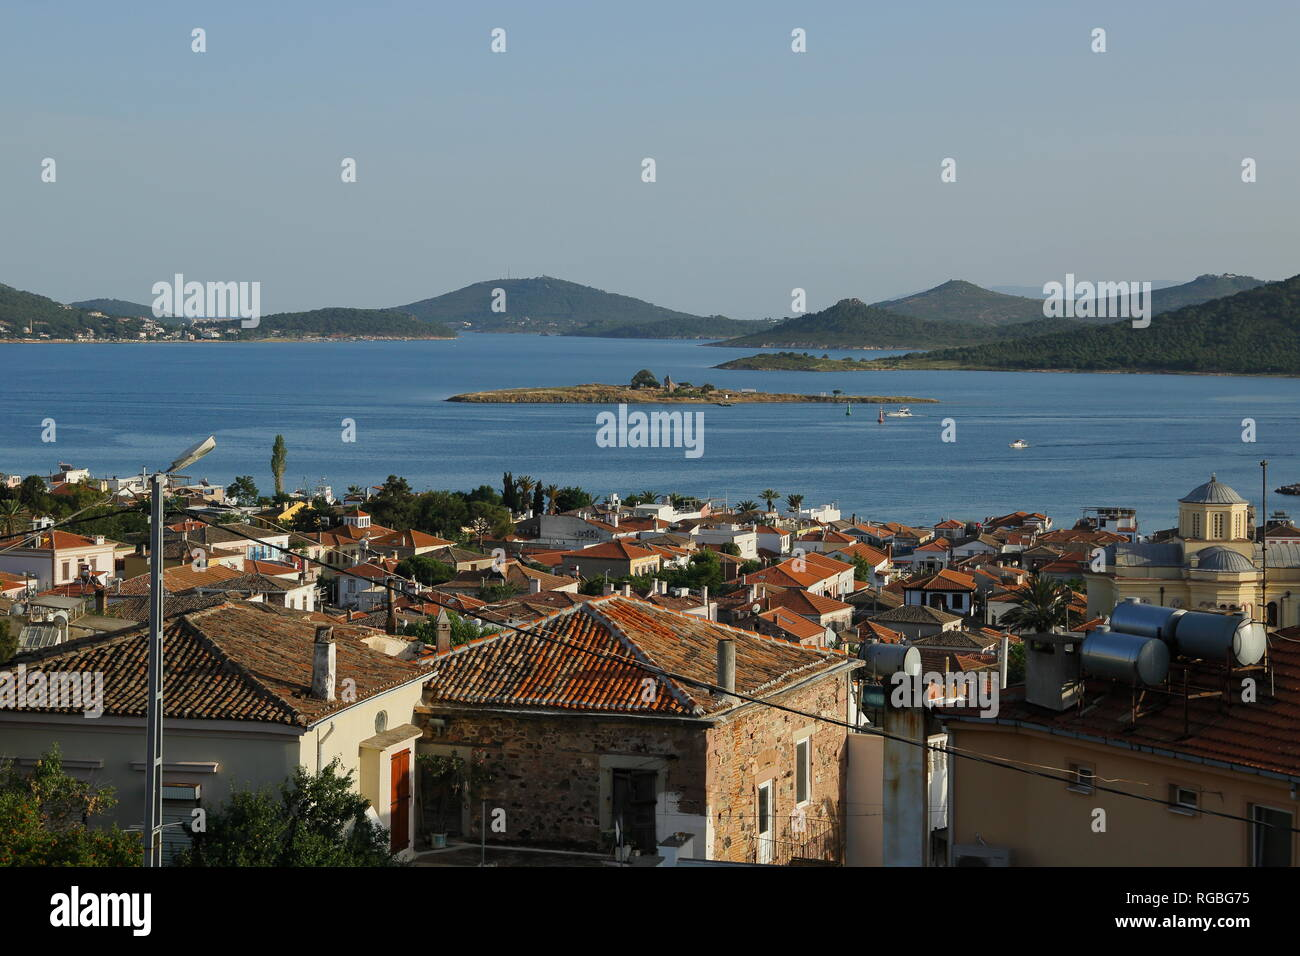 Historical and touristic Cunda Island. (Alibey island) Ayvalık, Turkey. View from a hill. - Stock Image